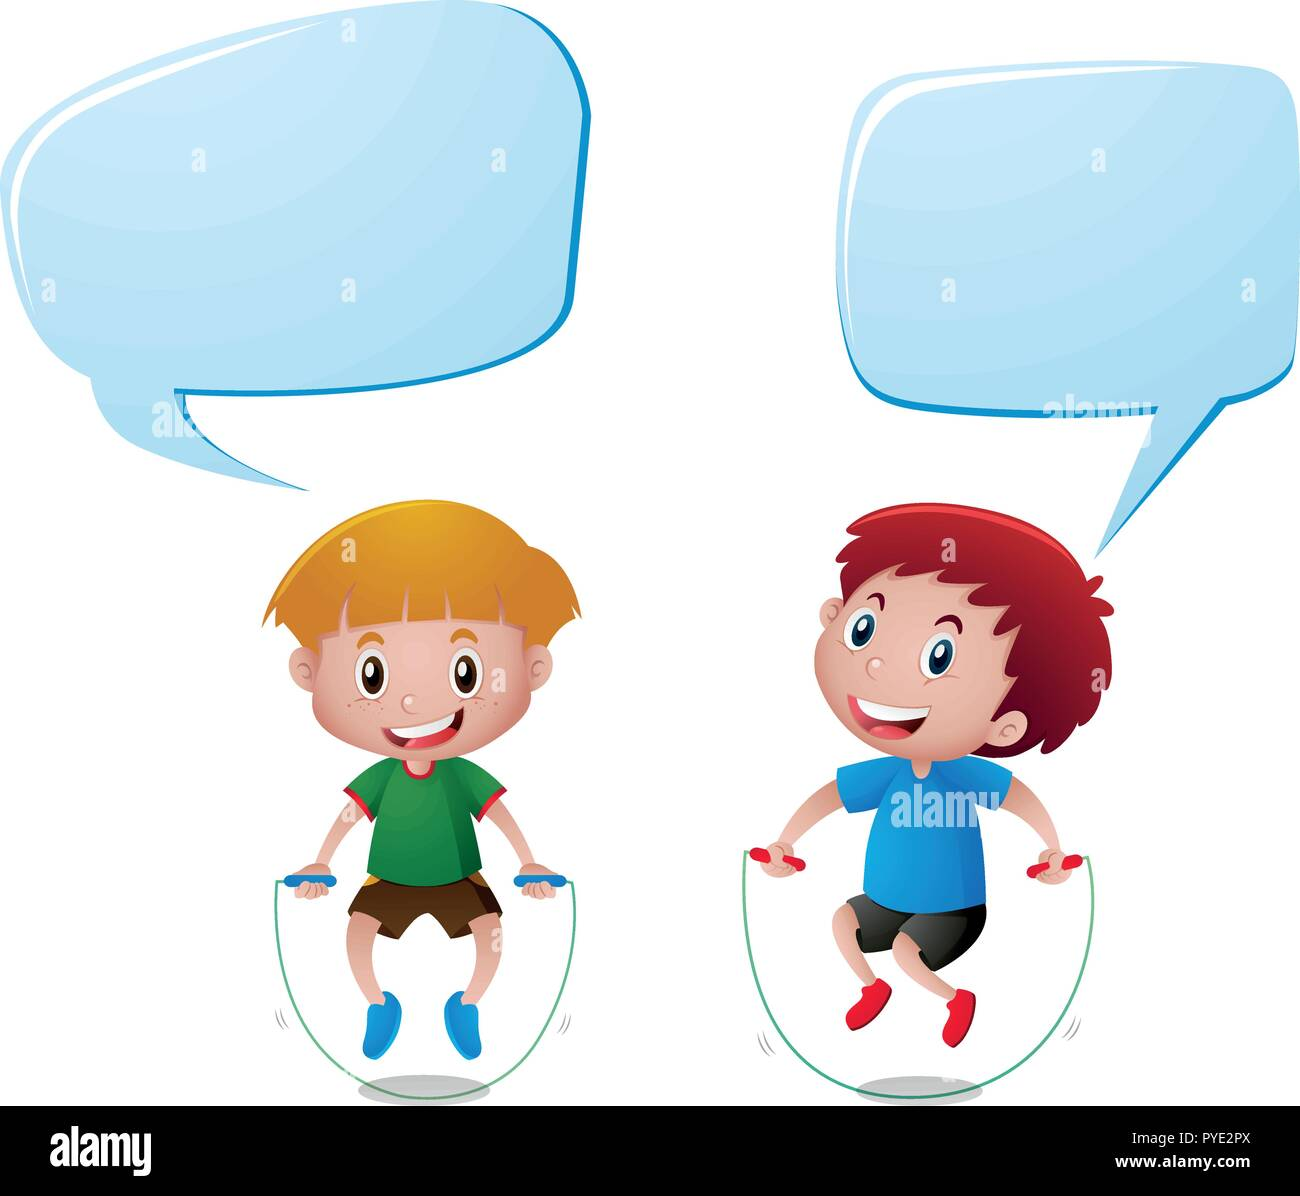 speech bubble template with two boys jumping rope illustration stock